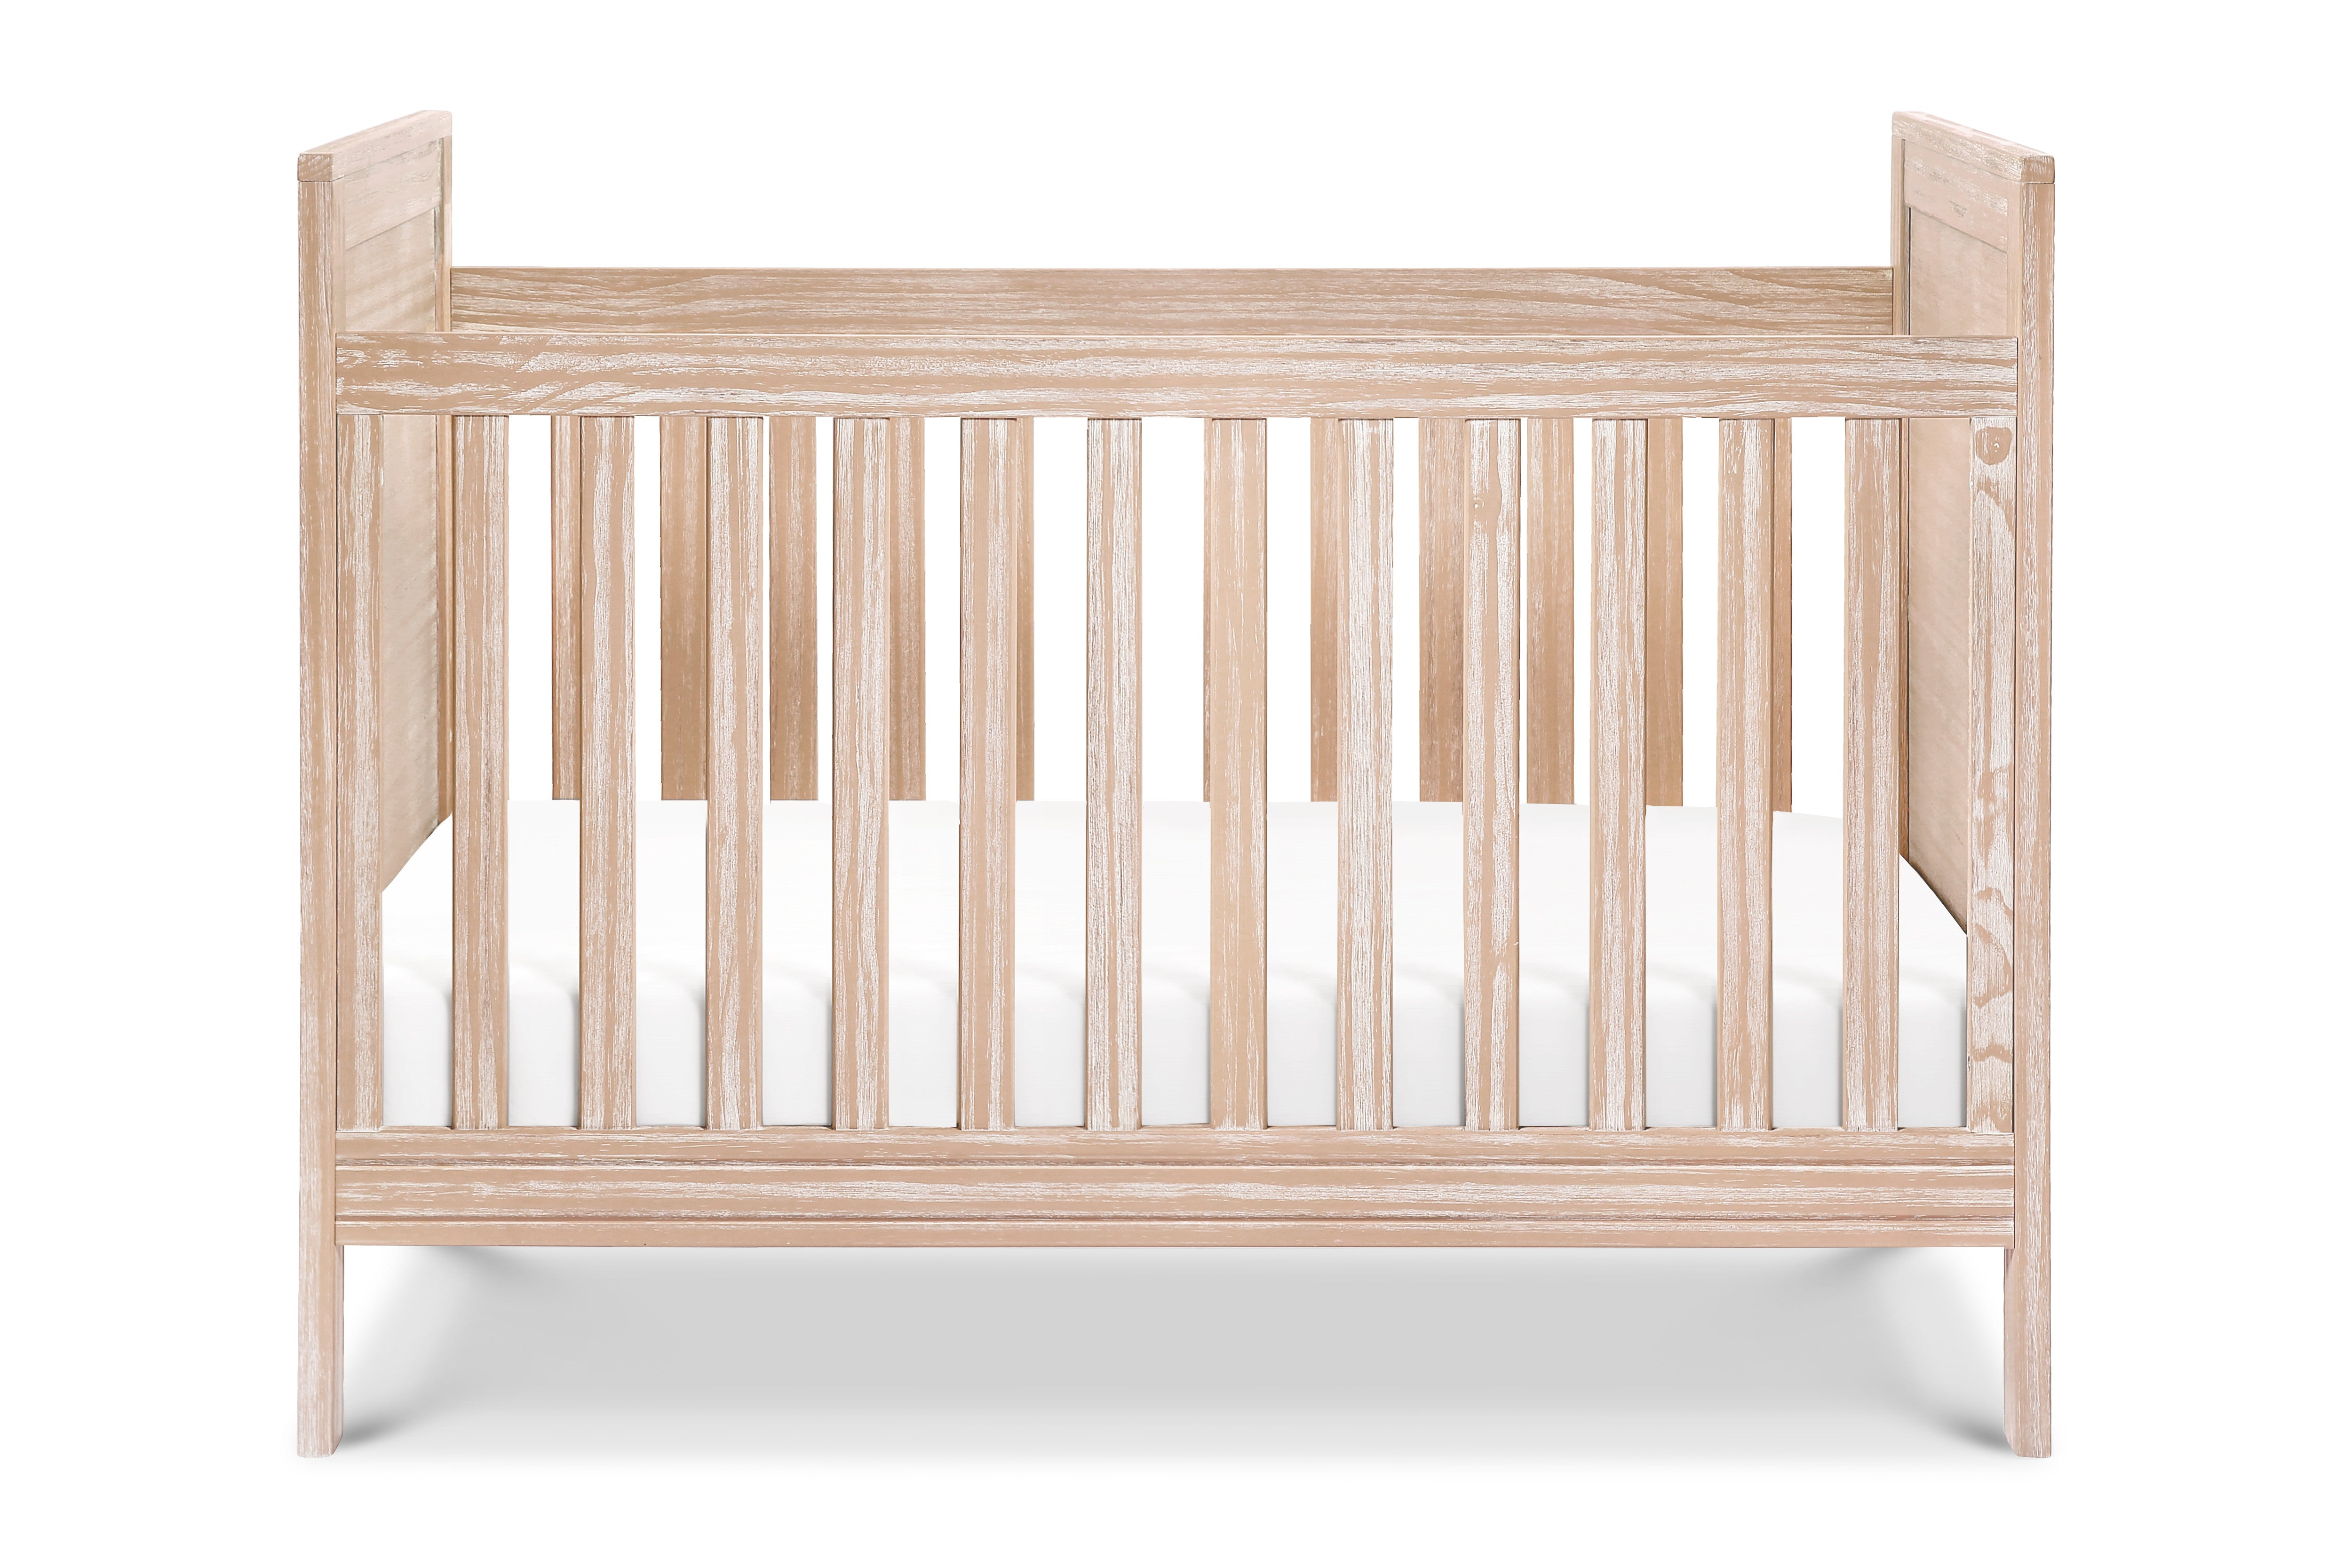 M13501UP,Fairway 3-in-1 Convertible Crib in Rustic Pine